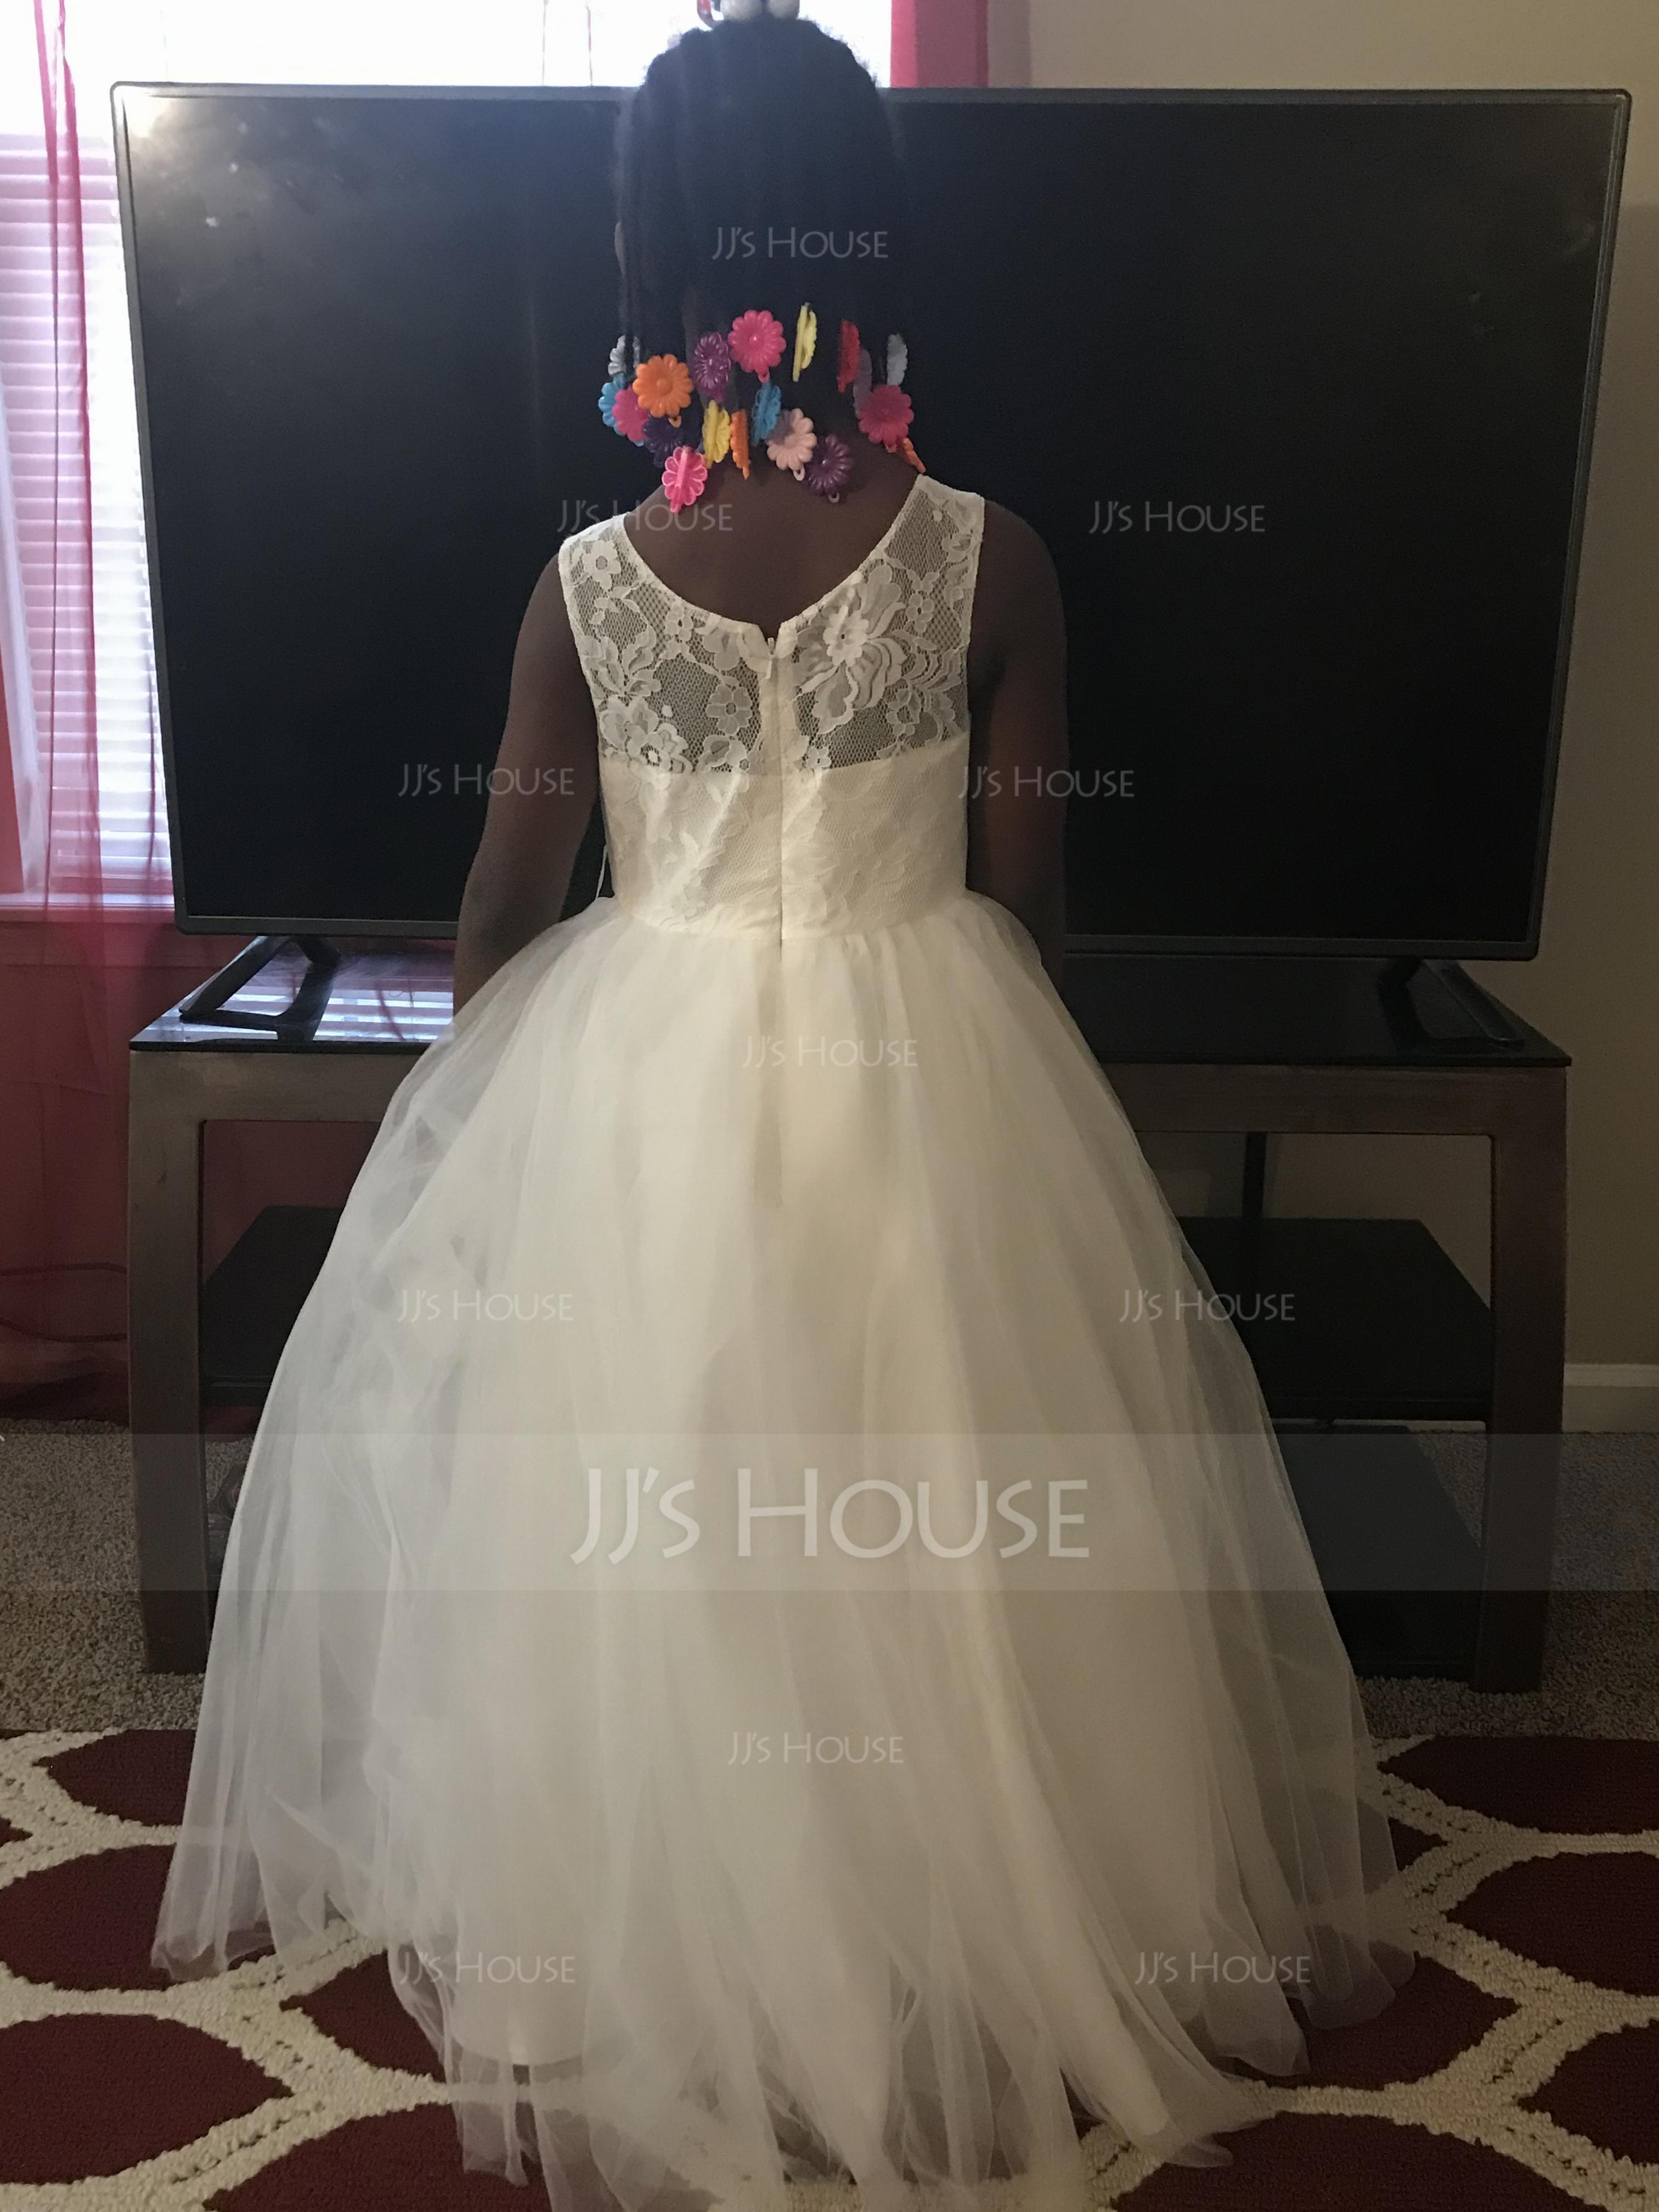 e9871544369 I love this dress it s so beautiful and both my flowers girls look amazing